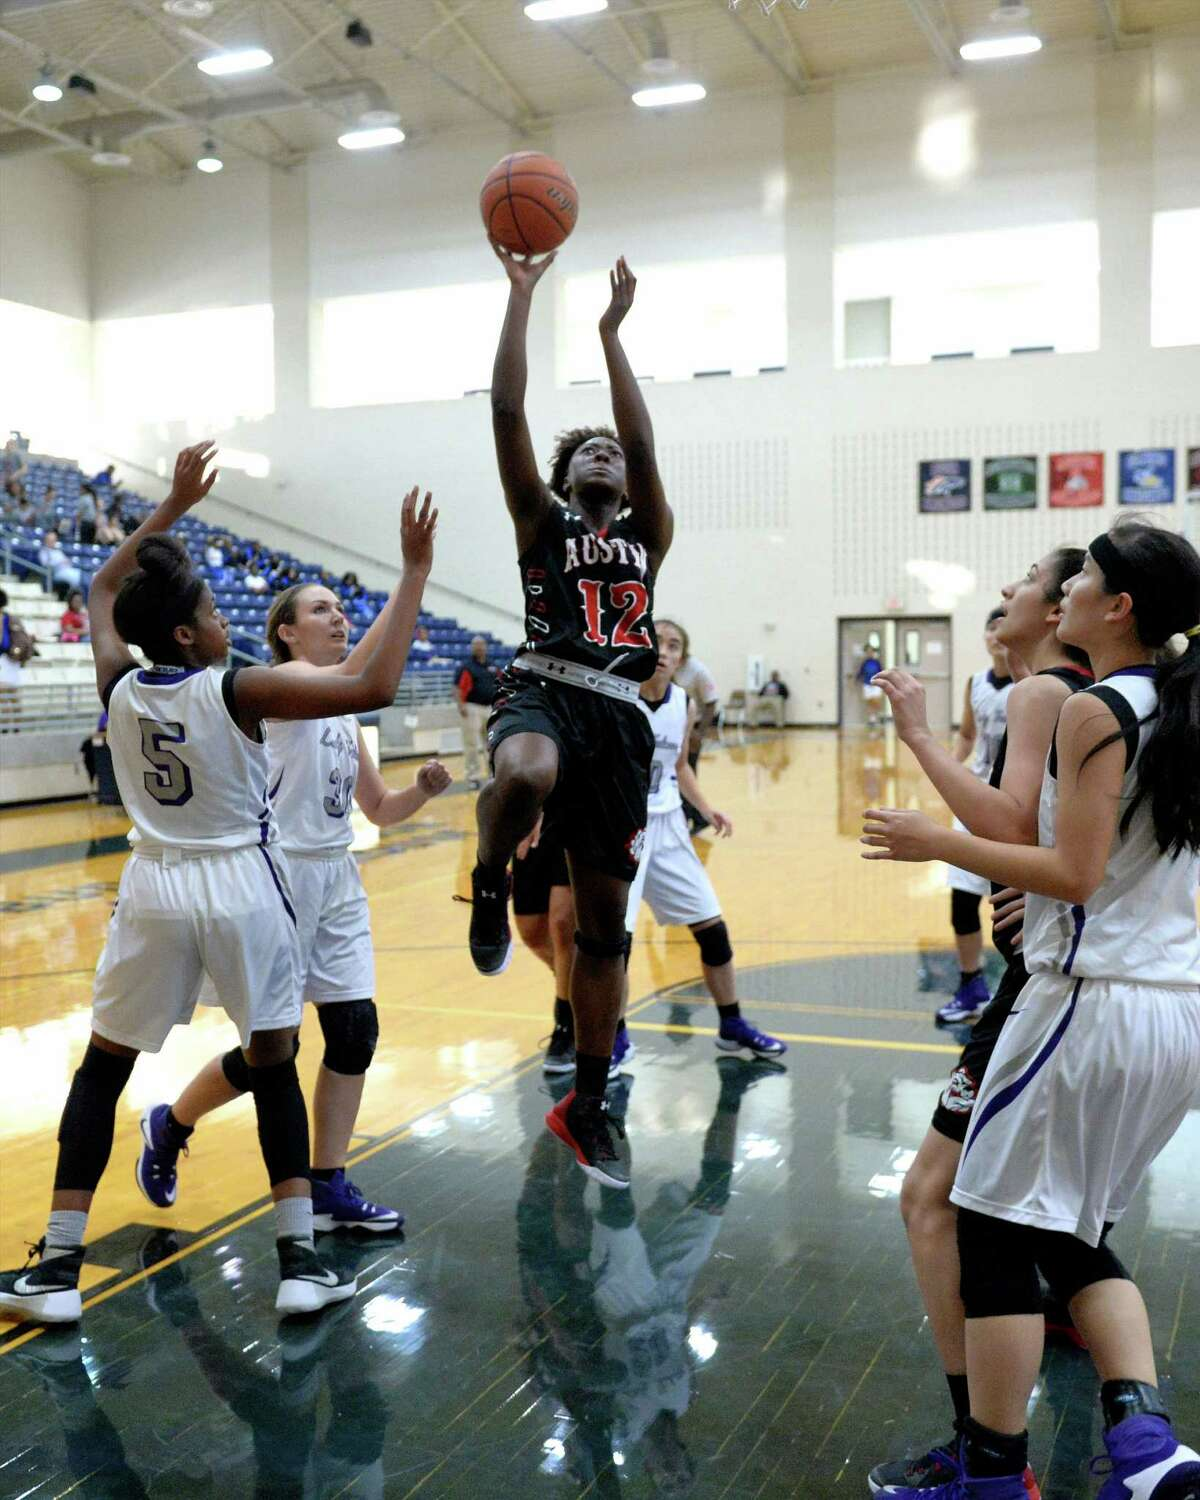 Syndi Rowland (12) of Austin drives to the hoop during the first half of a basketball game between the Ft. Bend Austin Bulldogs and the Jersey Village Falcons during the Ft. Bend ISD Varsity Girls Tournament on Thursday November 17, 2016 at the Buddy Hopson Field House, Missouri City, TX.